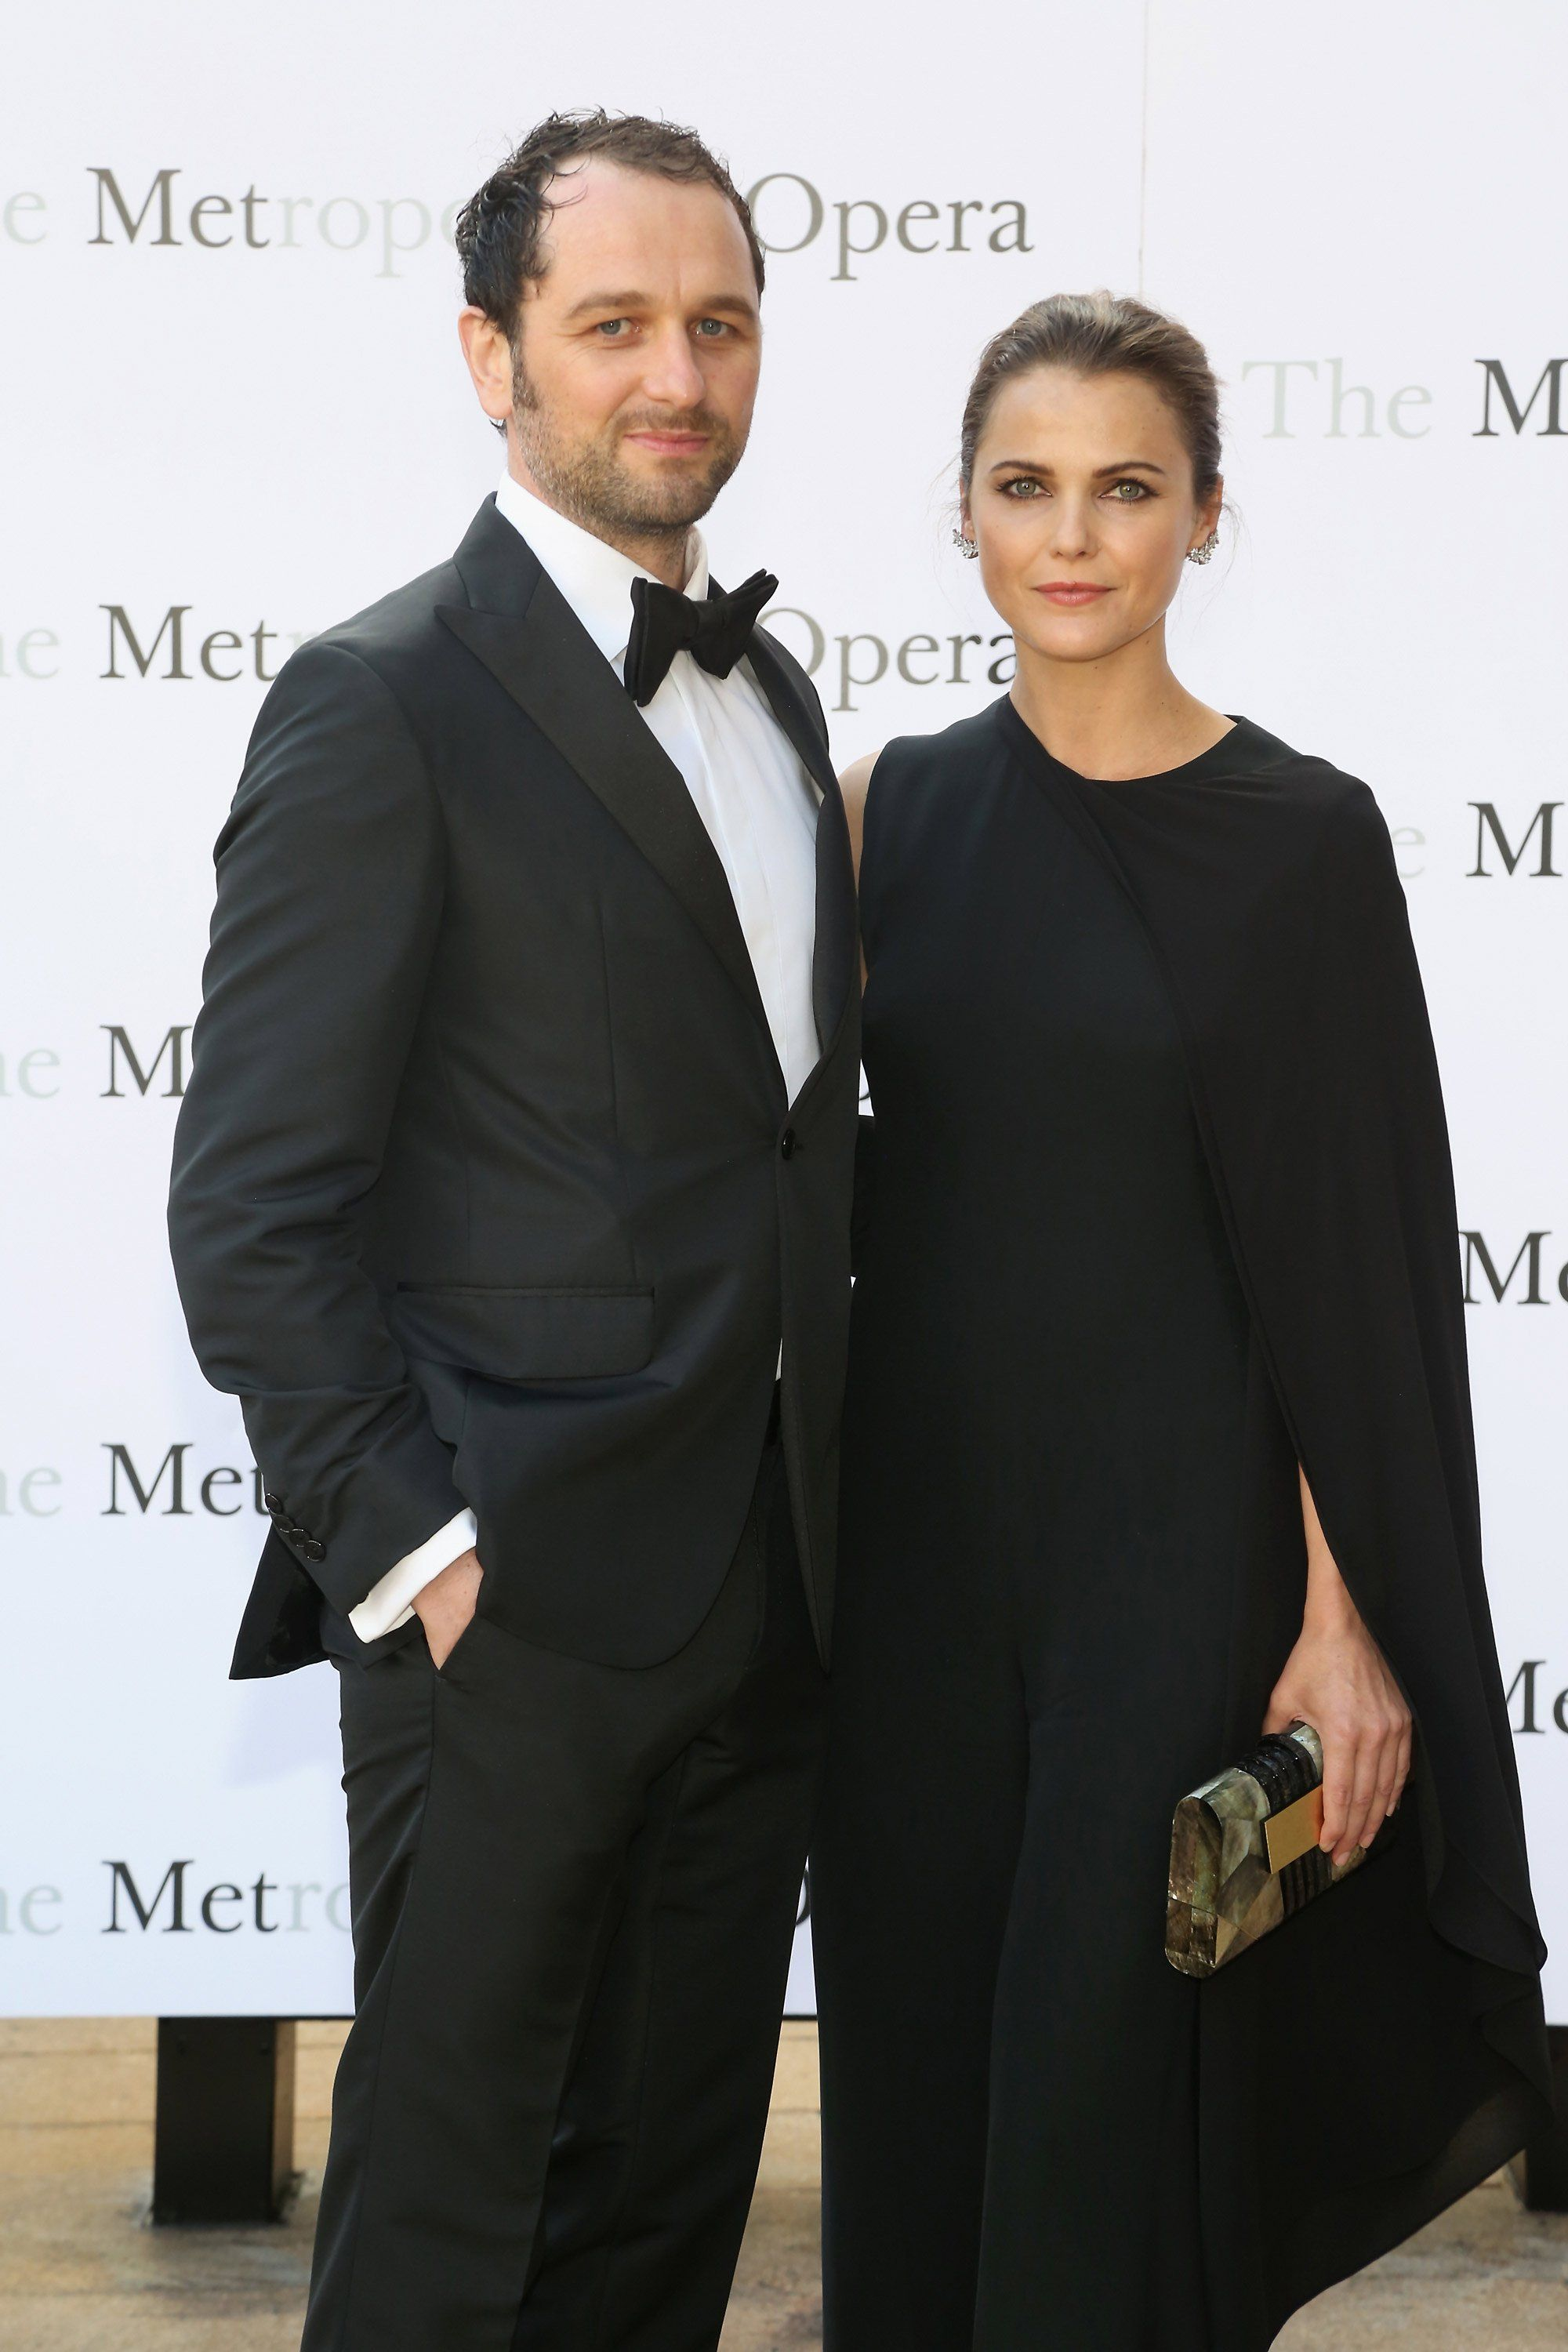 Emm Kuo Keri Russell Carries The Joa Clutch To Met Operas Tristan